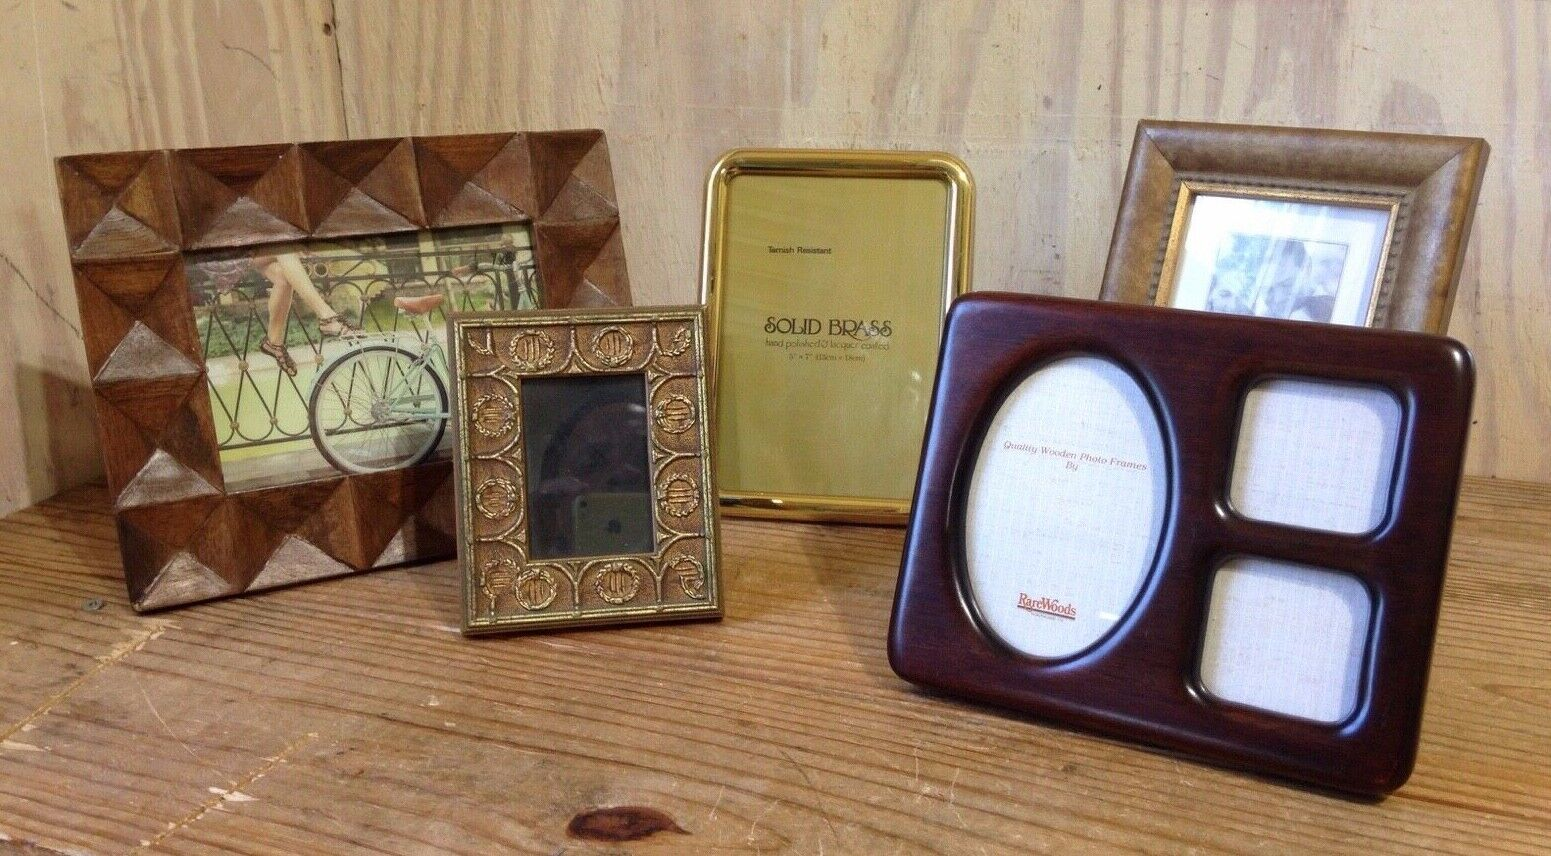 Picture Frame Lot of 5 Solid Brass Wood Heirloom Rare Woods 3 Photo Home Decor